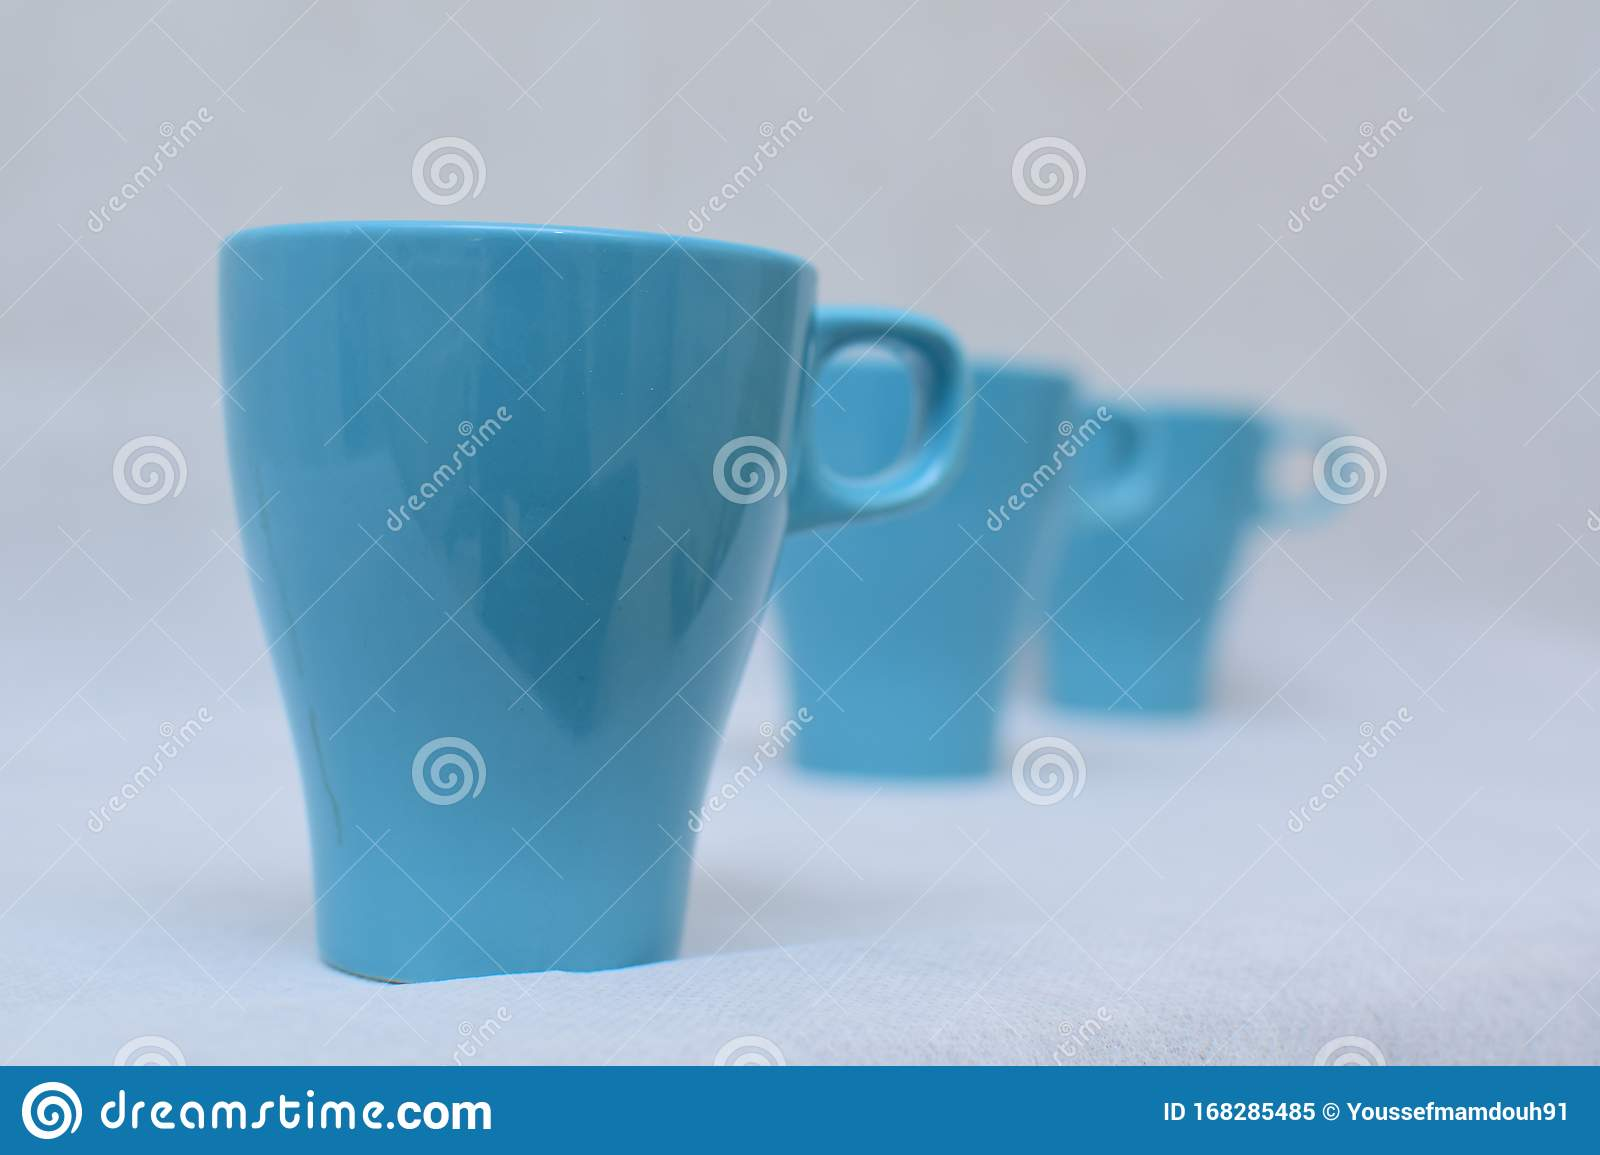 Mockup Set Of Colorful Tea Or Coffee Ceramic Mug Template For Branding Identity And Company Logo Design Drink Ware Dining Stock Image Image Of Colorful Beverage 168285485